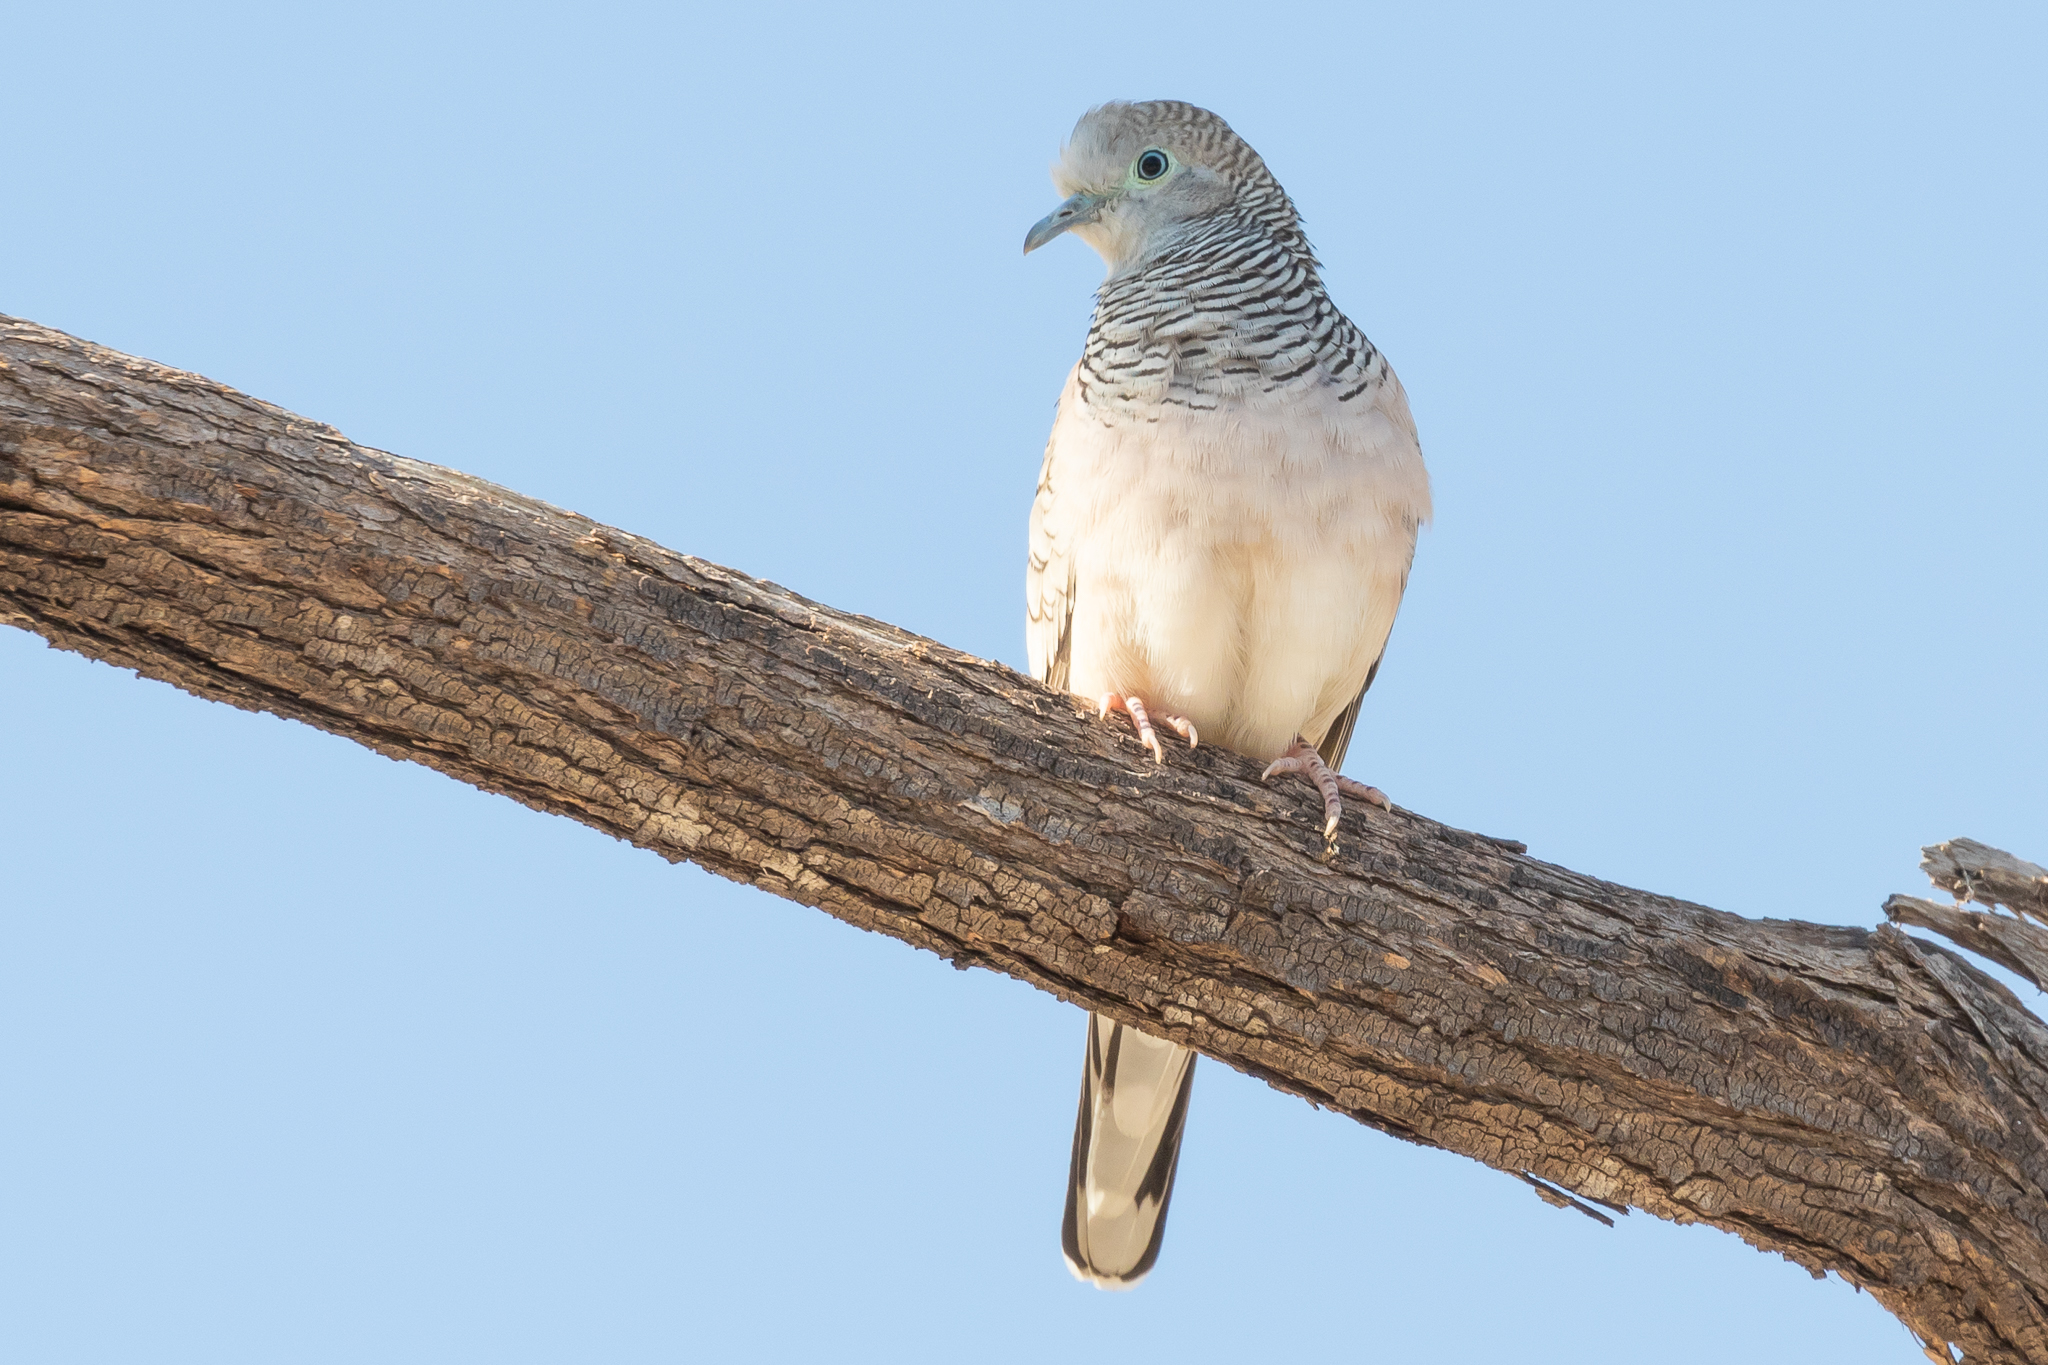 The Peaceful Dove (24 cm) inhabits the open woodlands across most of Australia except in the south-west and Tasmania. They feed from the ground on seeds and insects.